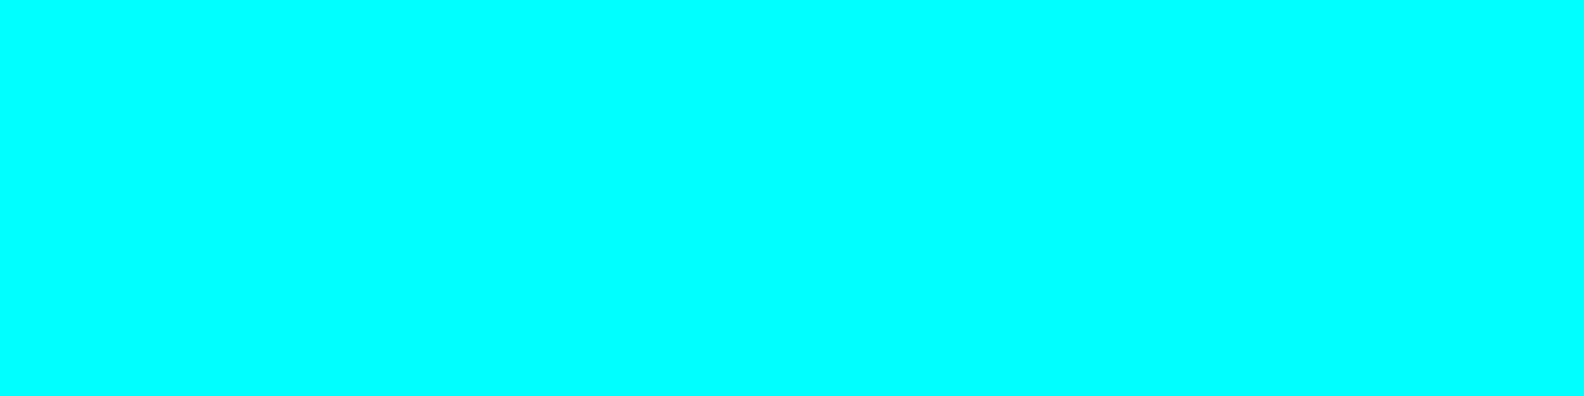 1584x396 Electric Cyan Solid Color Background